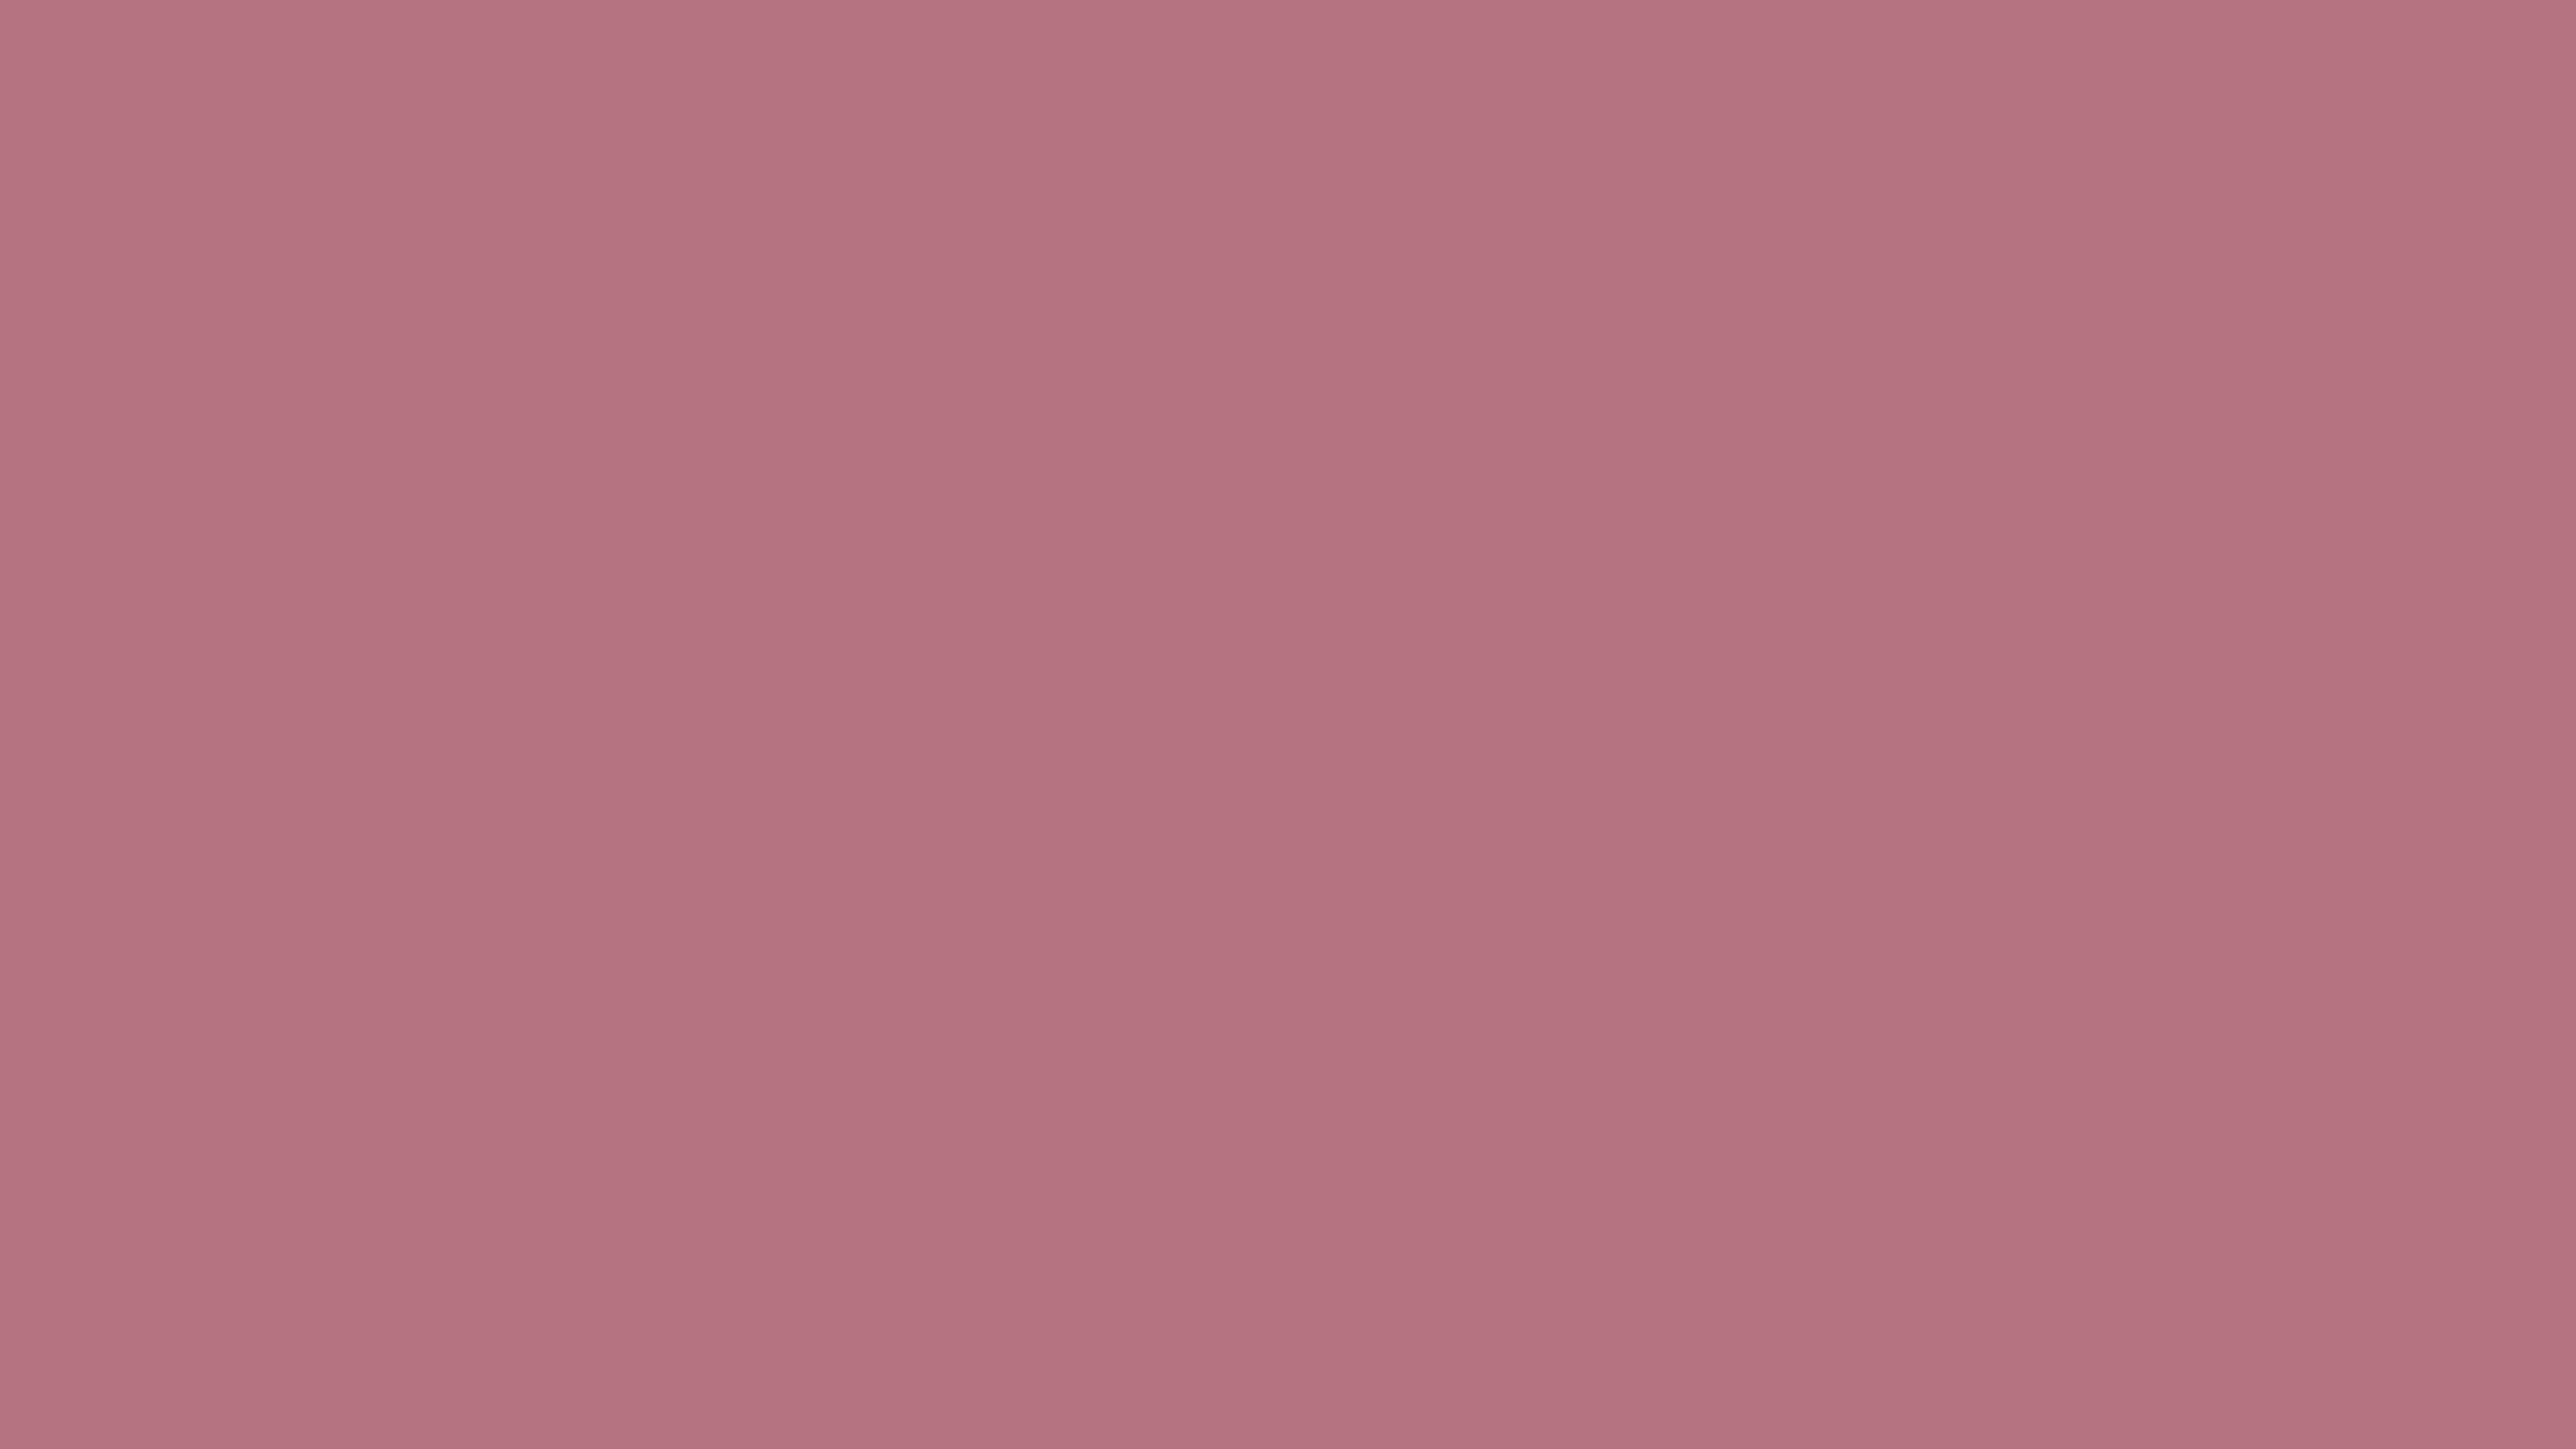 4096x2304 Turkish Rose Solid Color Background